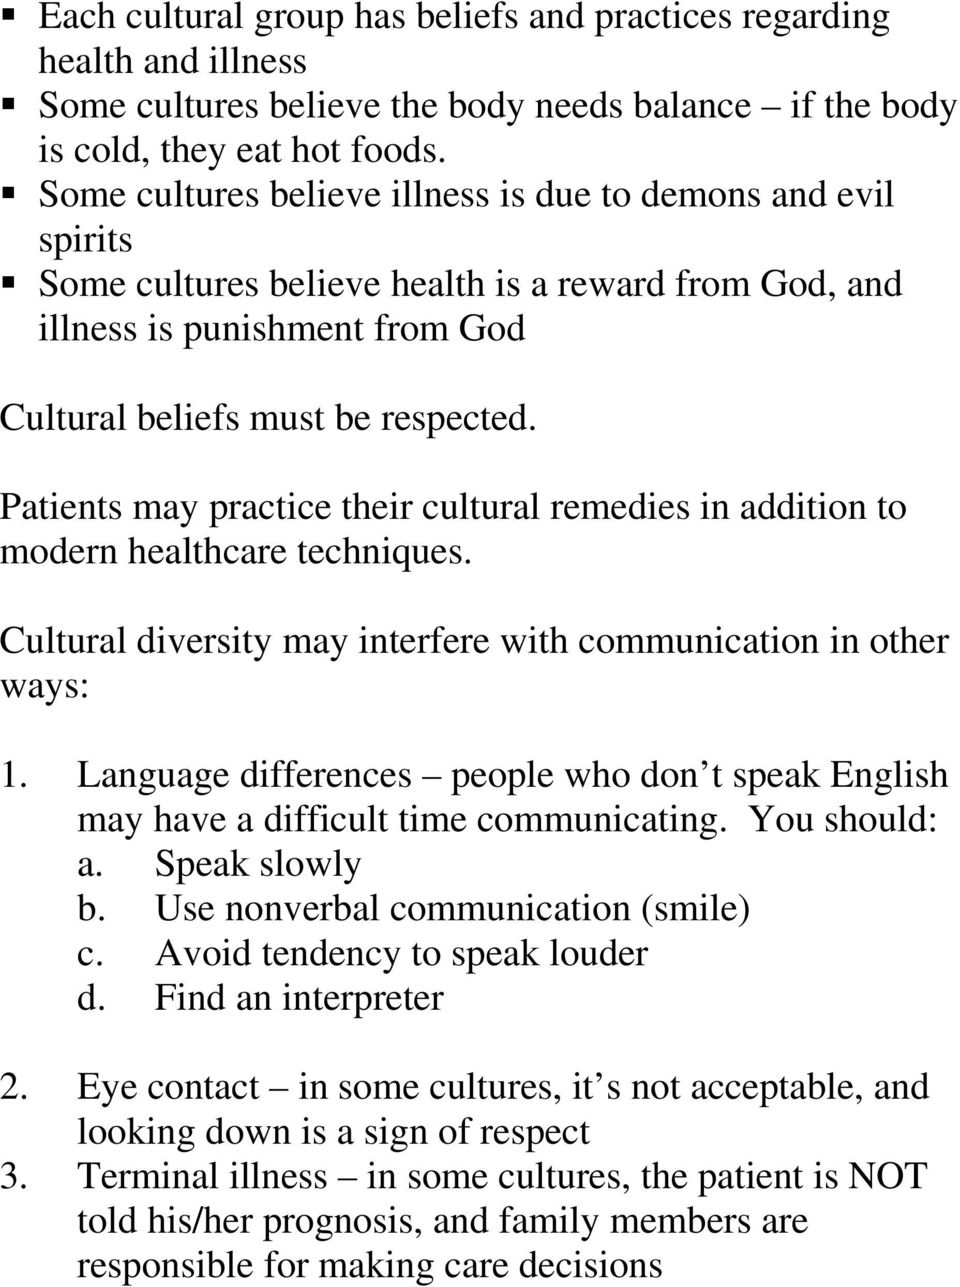 Patients may practice their cultural remedies in addition to modern healthcare techniques. Cultural diversity may interfere with communication in other ways: 1.